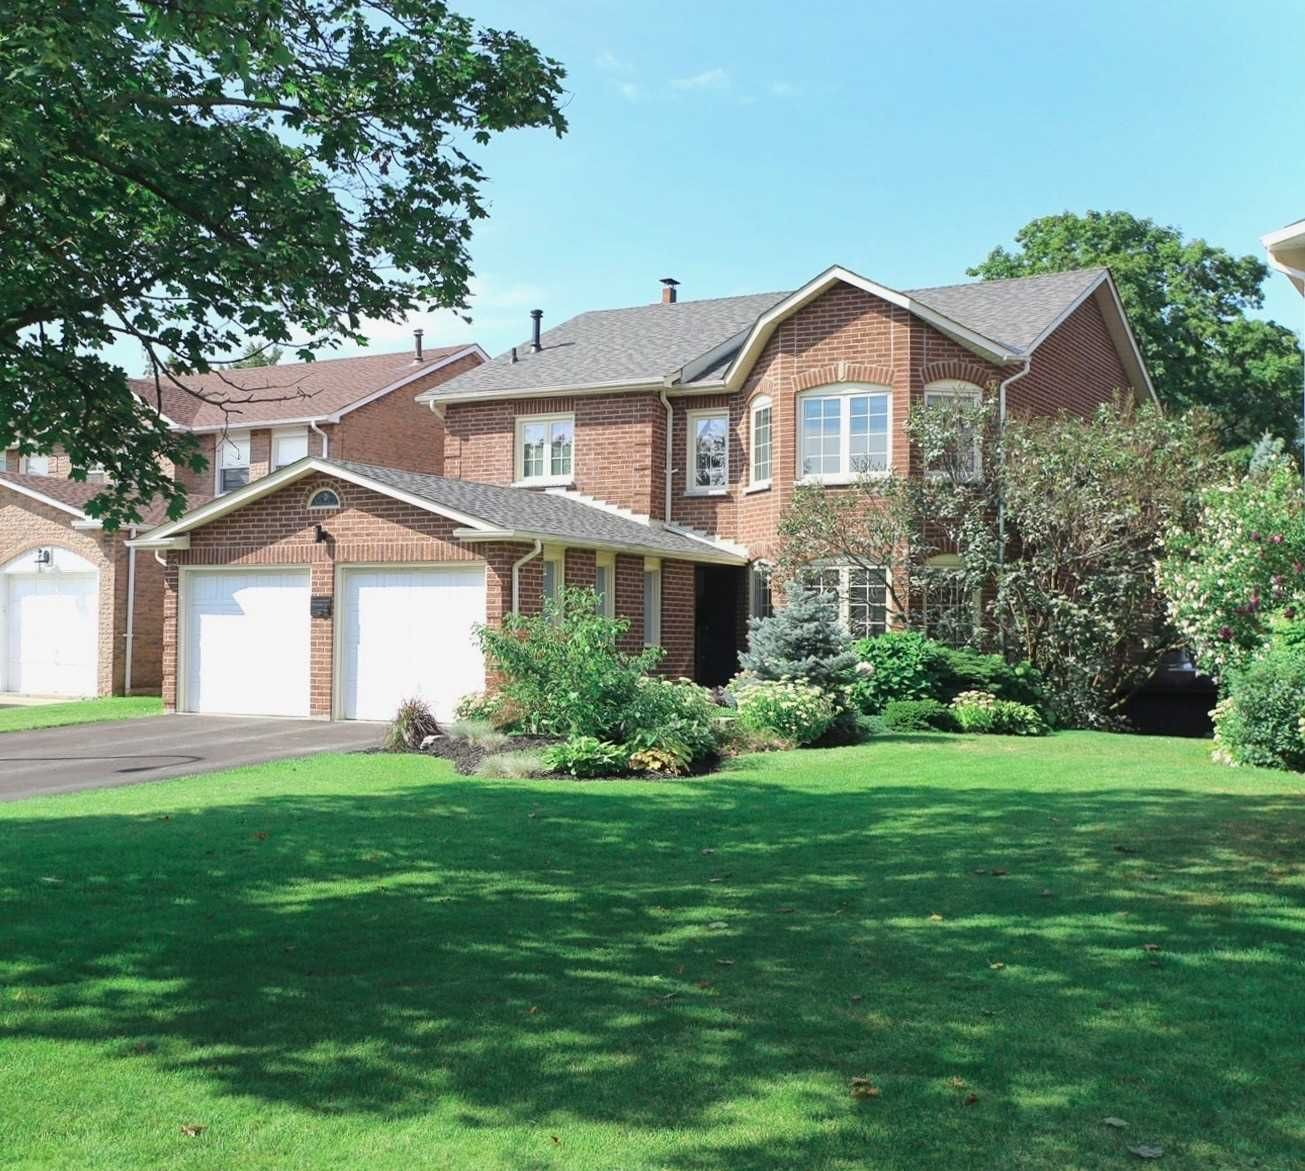 Main Photo: 24 Resolute Crescent in Whitby: Lynde Creek House (2-Storey) for sale : MLS®# E4560078